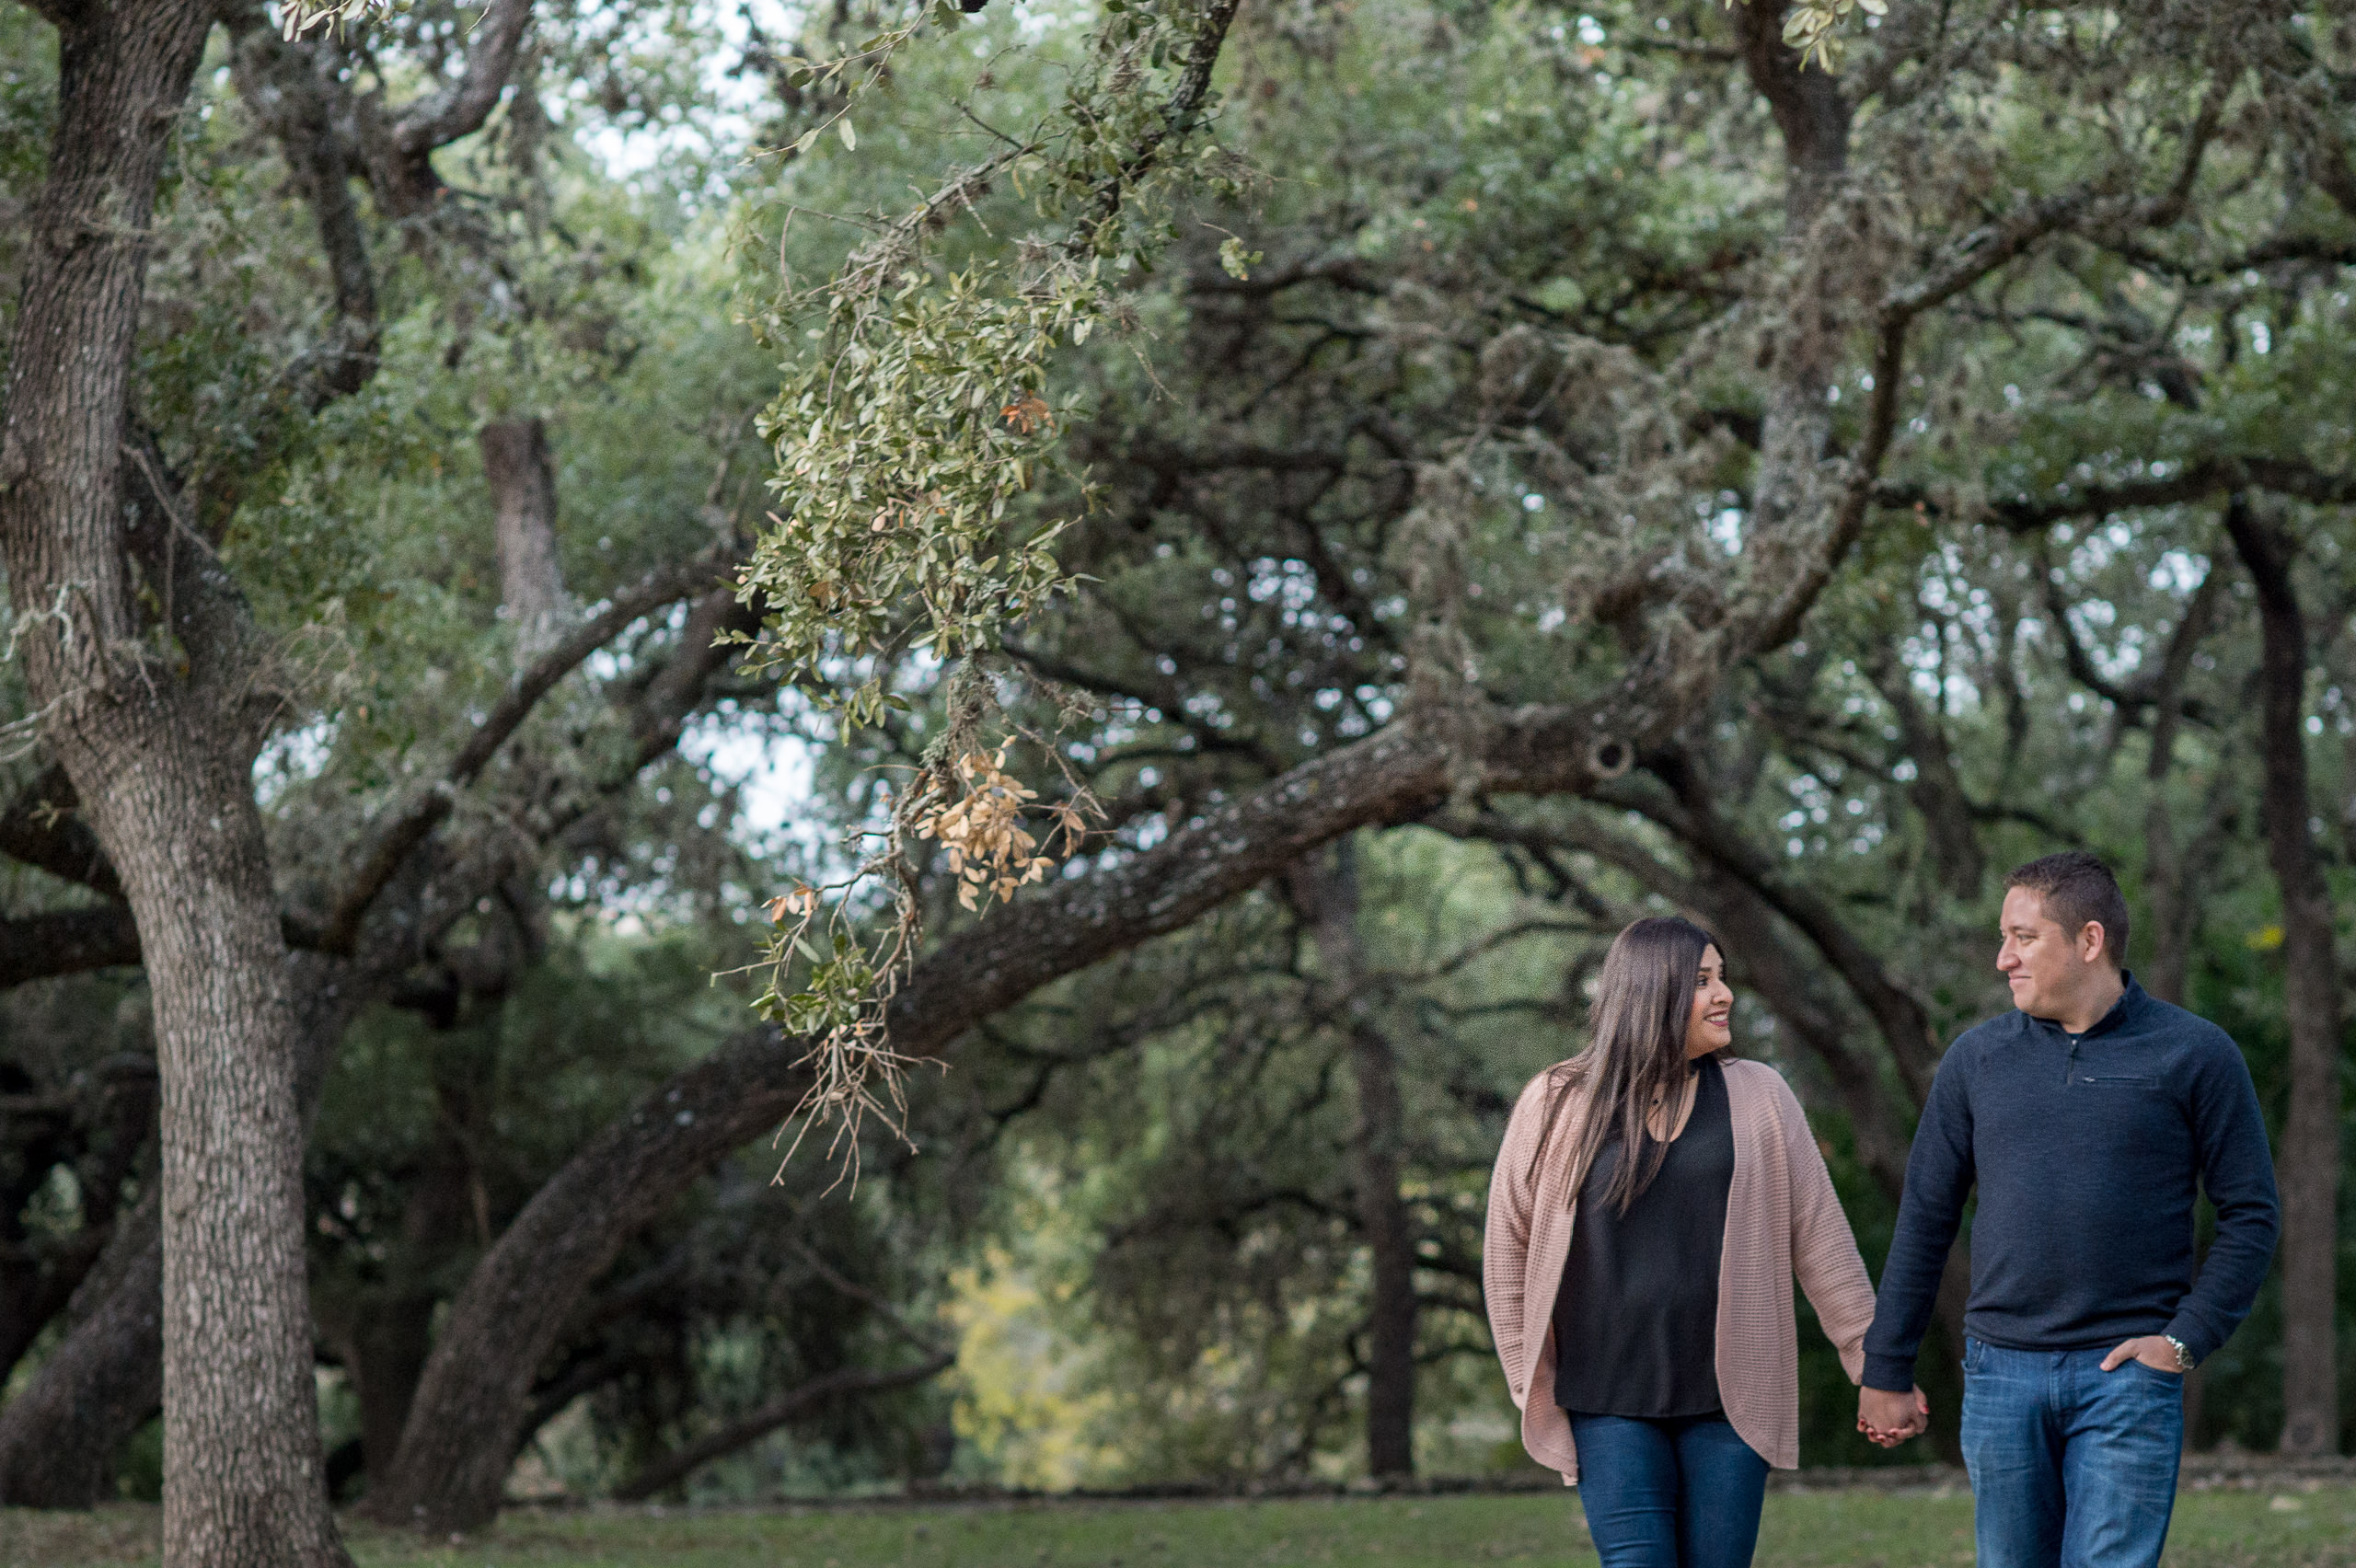 denman-estate-engagement-session-san-antonio-wedding-photographers-_4S24483